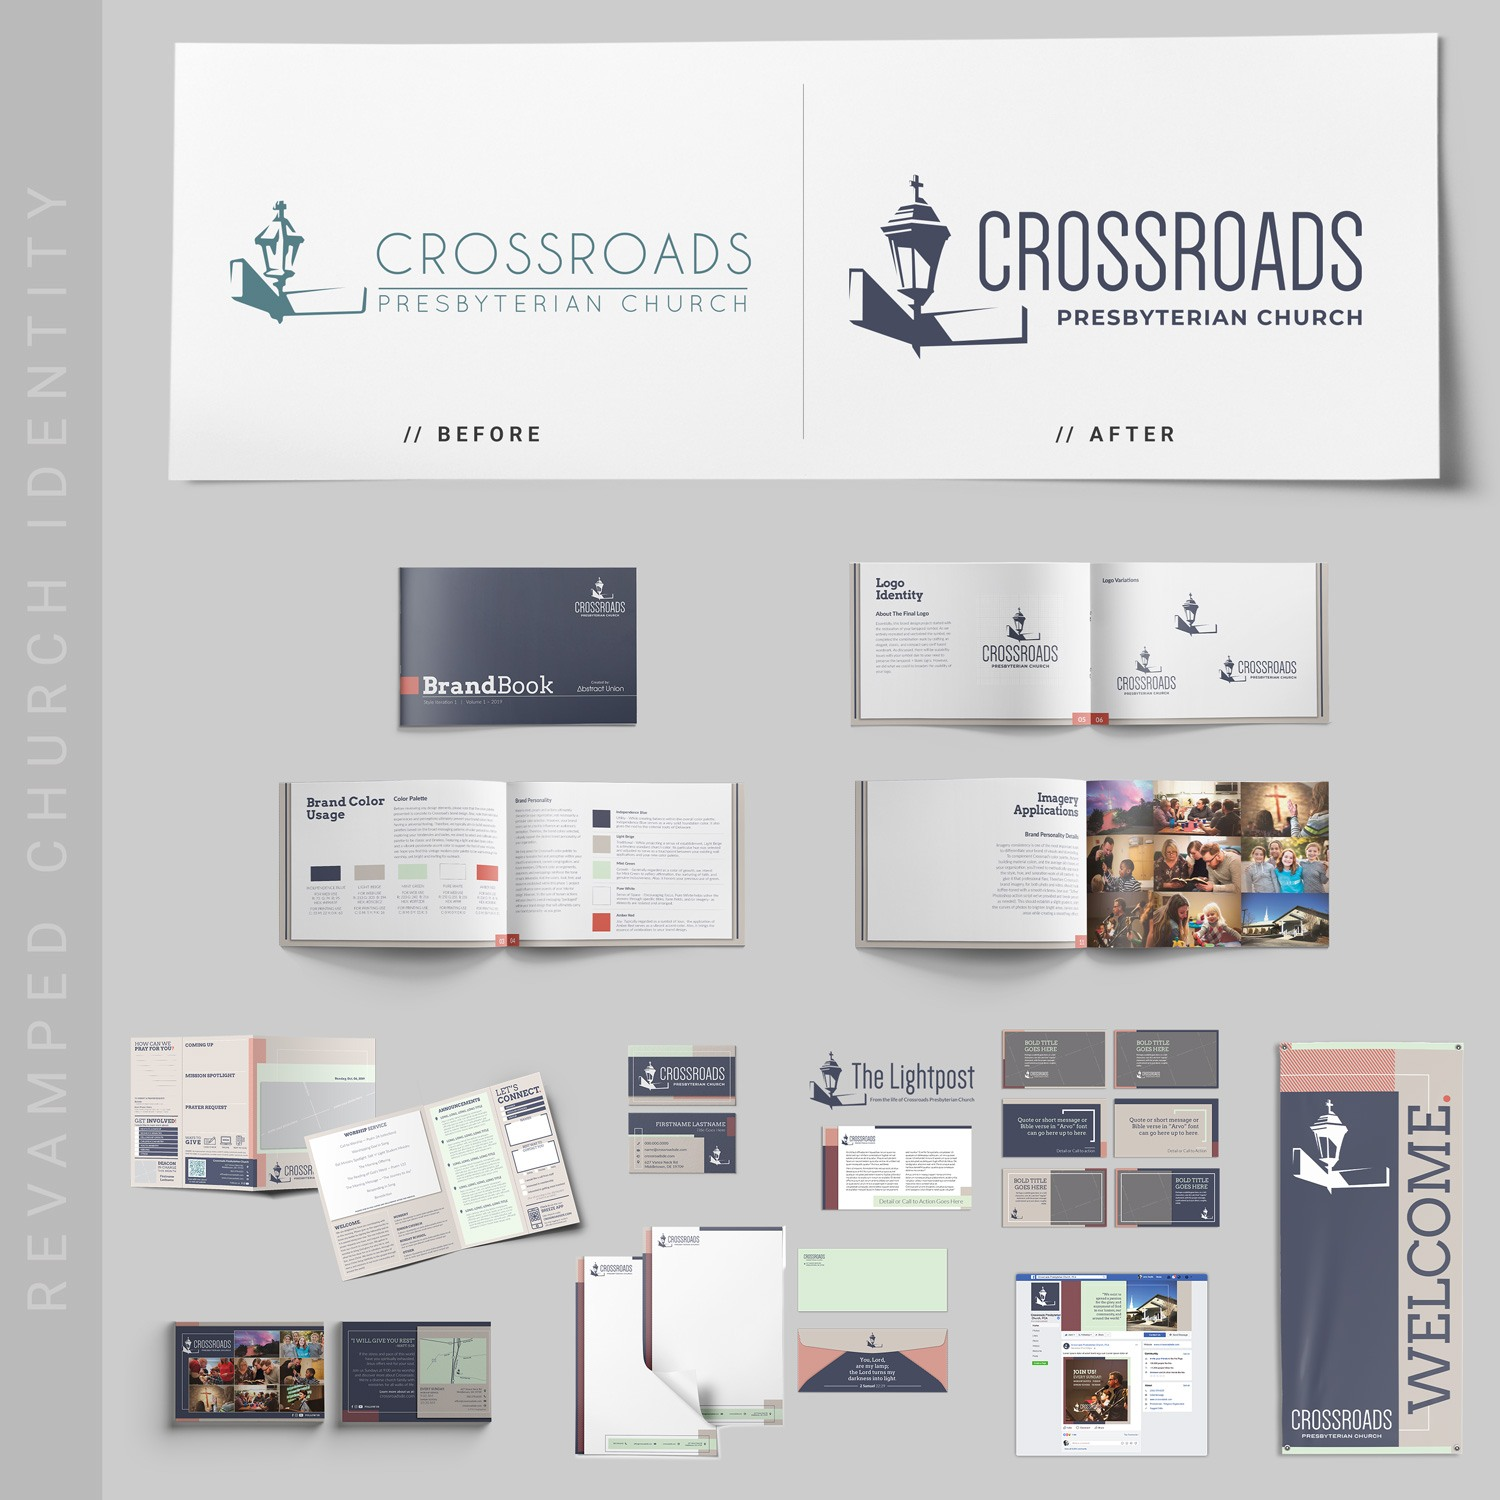 Church logo revamp ideas and examples. Brand guidelines for traditional church brand by Abstract Union